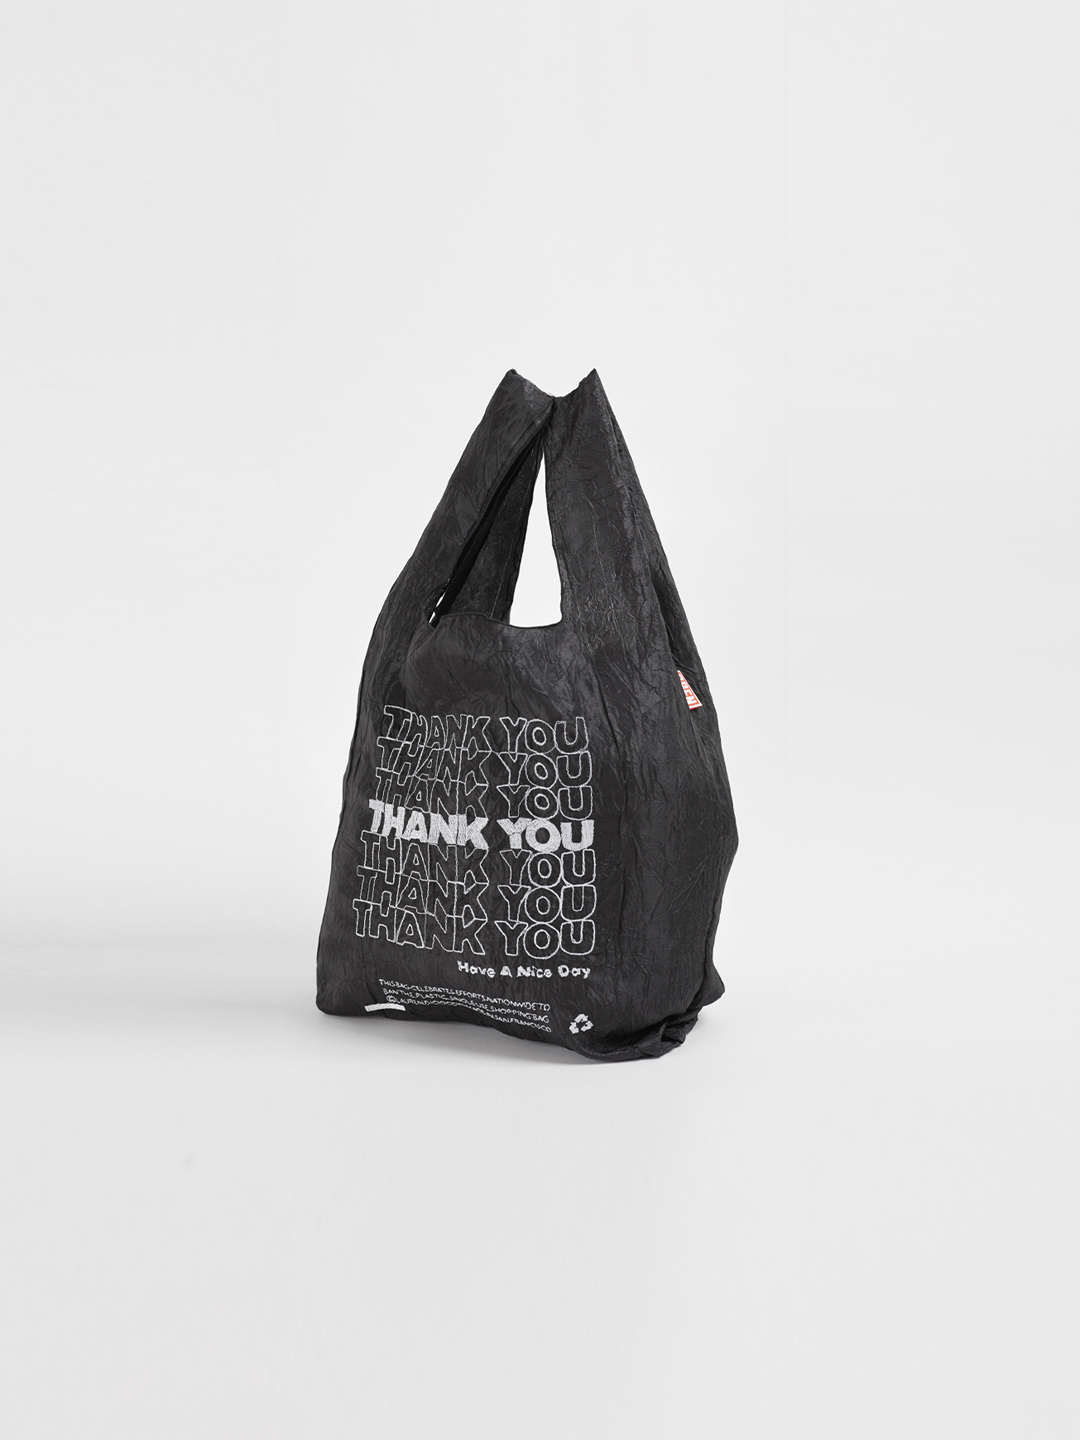 MINI Thank You Tote - Thank You White On Black Fablic【LIMITED ITEM】